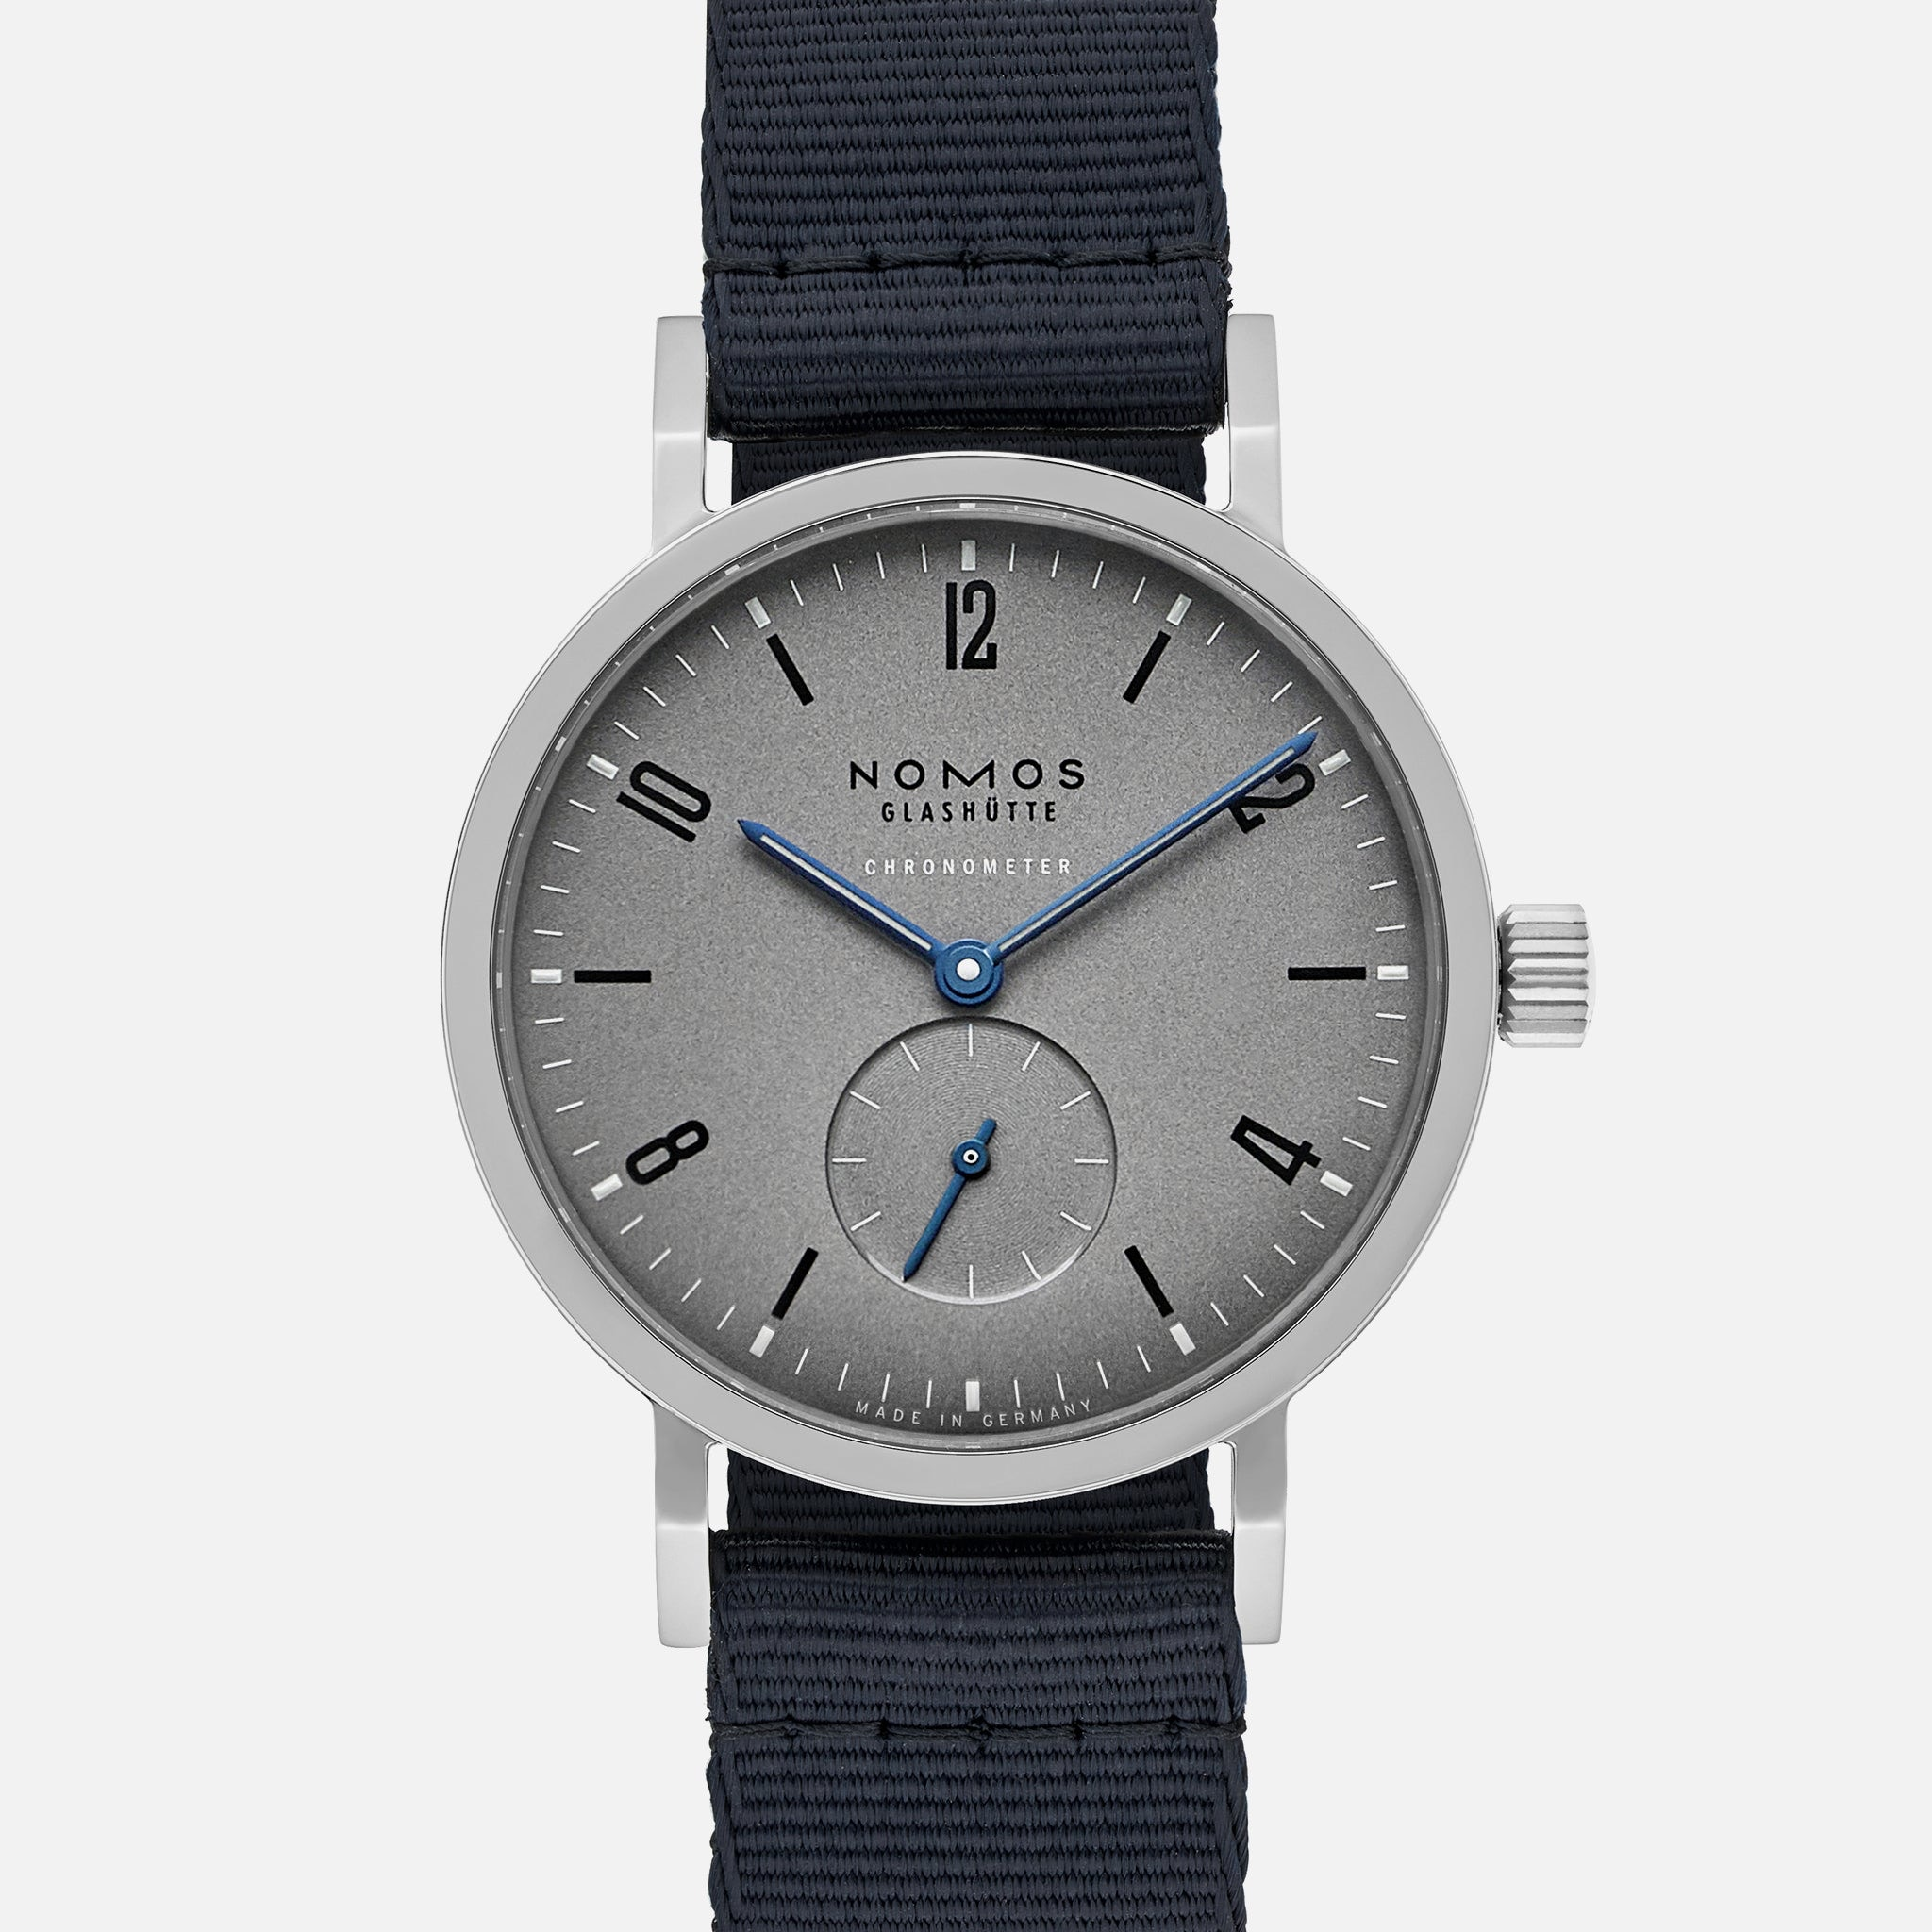 https://hodinkee-shopify.imgix.net/s/files/1/0146/0732/products/LE-Nomos-Soldier-AltStrap_2048x2048.jpg?v=1575990281&auto=format&fit=max&q=88&ixlib=react-8.4.0&w=530